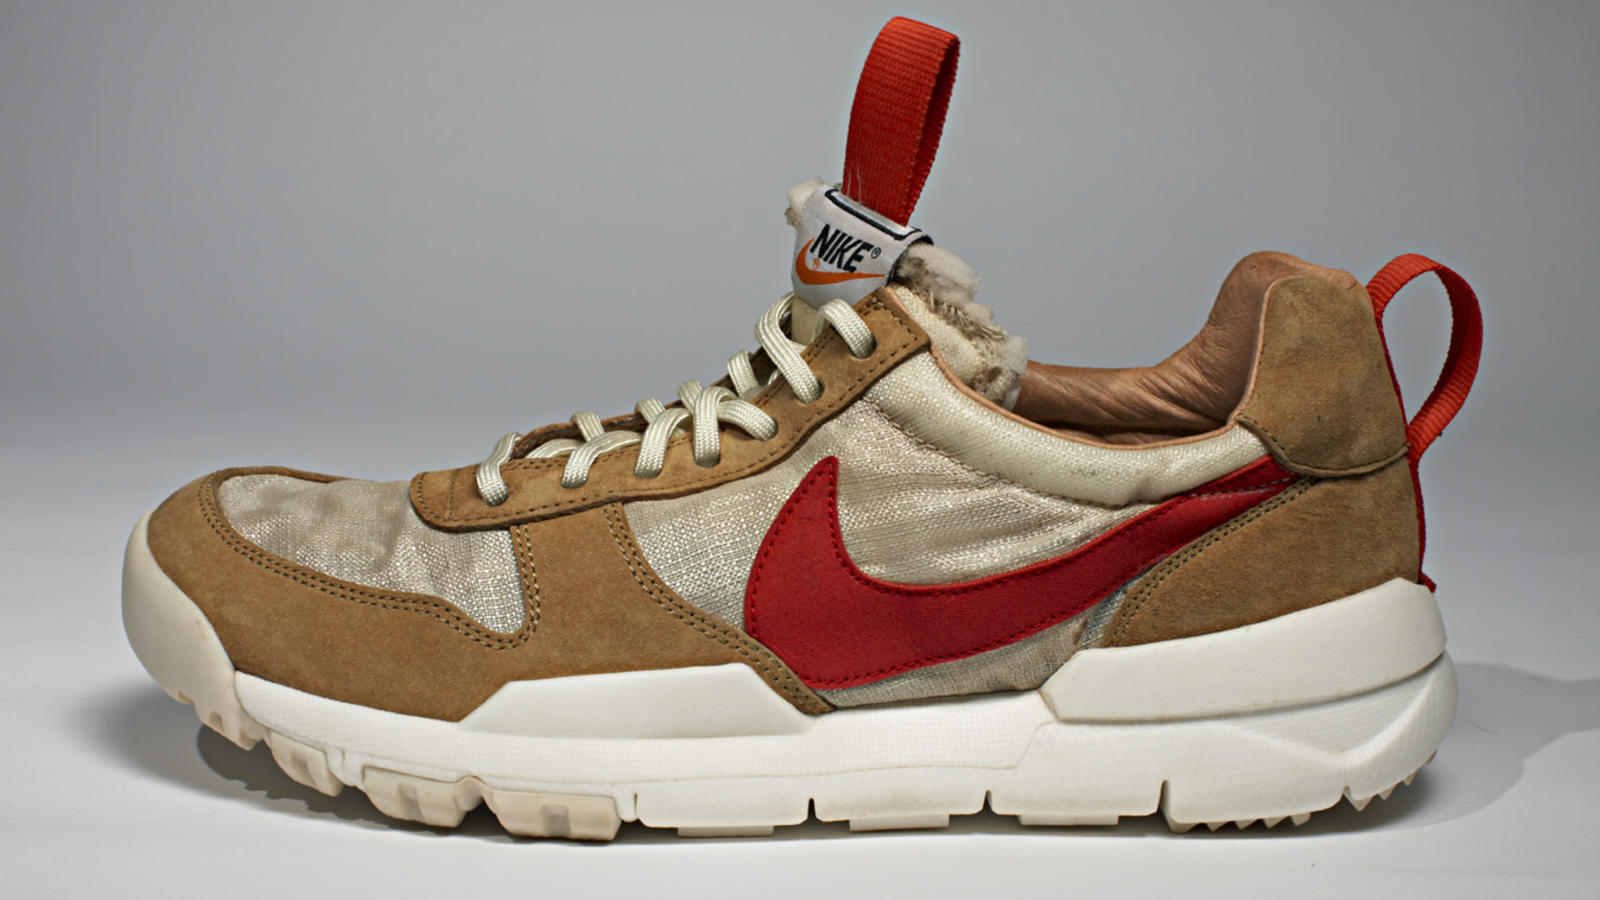 Nike Mars Yard 2.0: All You Need to Know About The Re-release